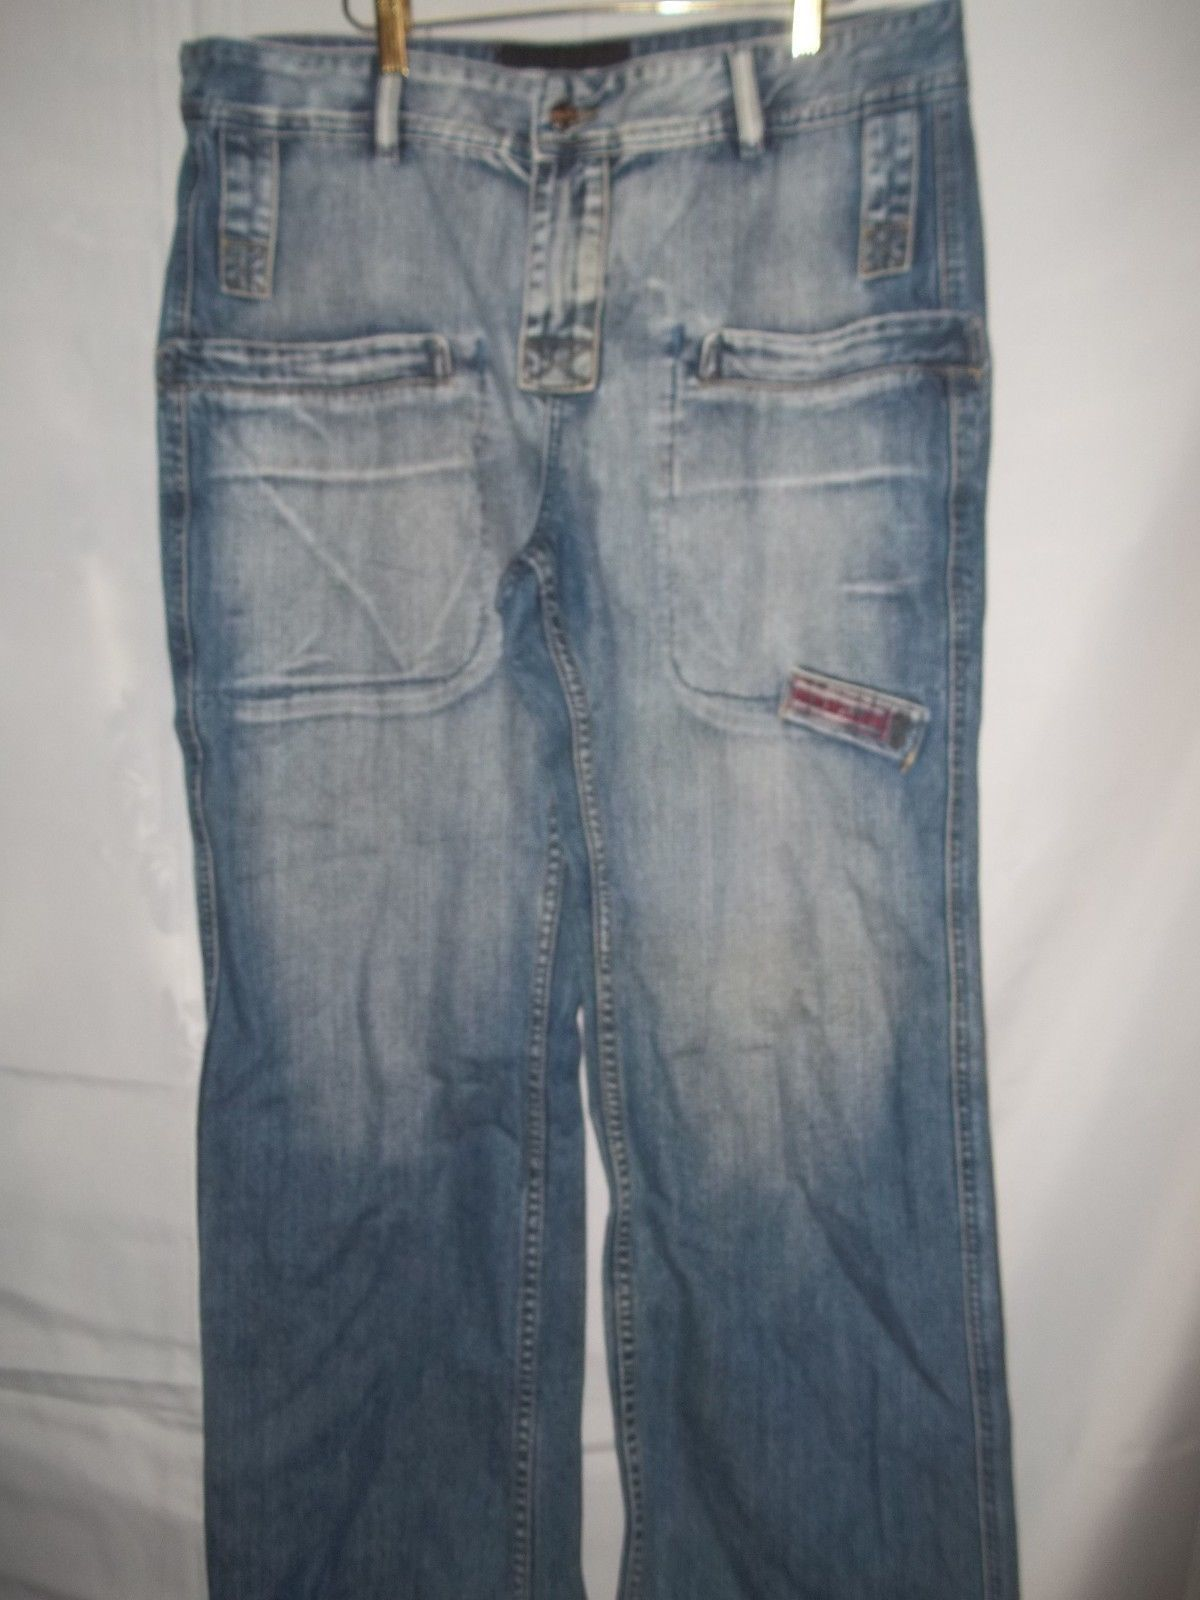 Primary image for Mens Size 38 x 30 Geno Bellini RN# 67847Blue Jeans Designer